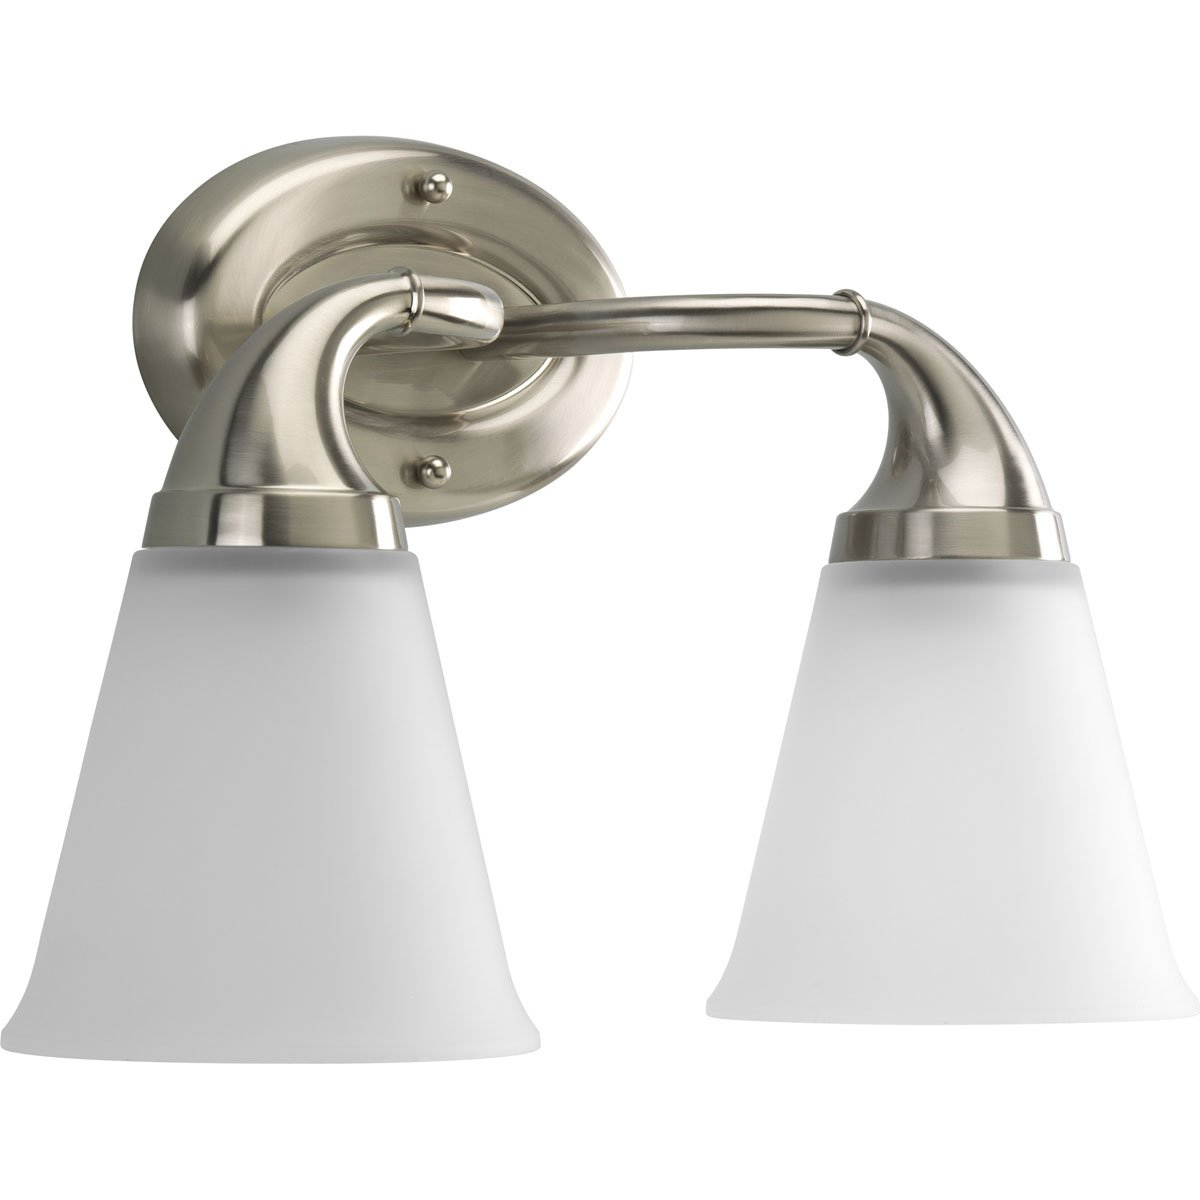 Progress Lighting P2759-09 2-Light Bath Which Mounts Up Or Down, Brushed Nickel by Progress Lighting